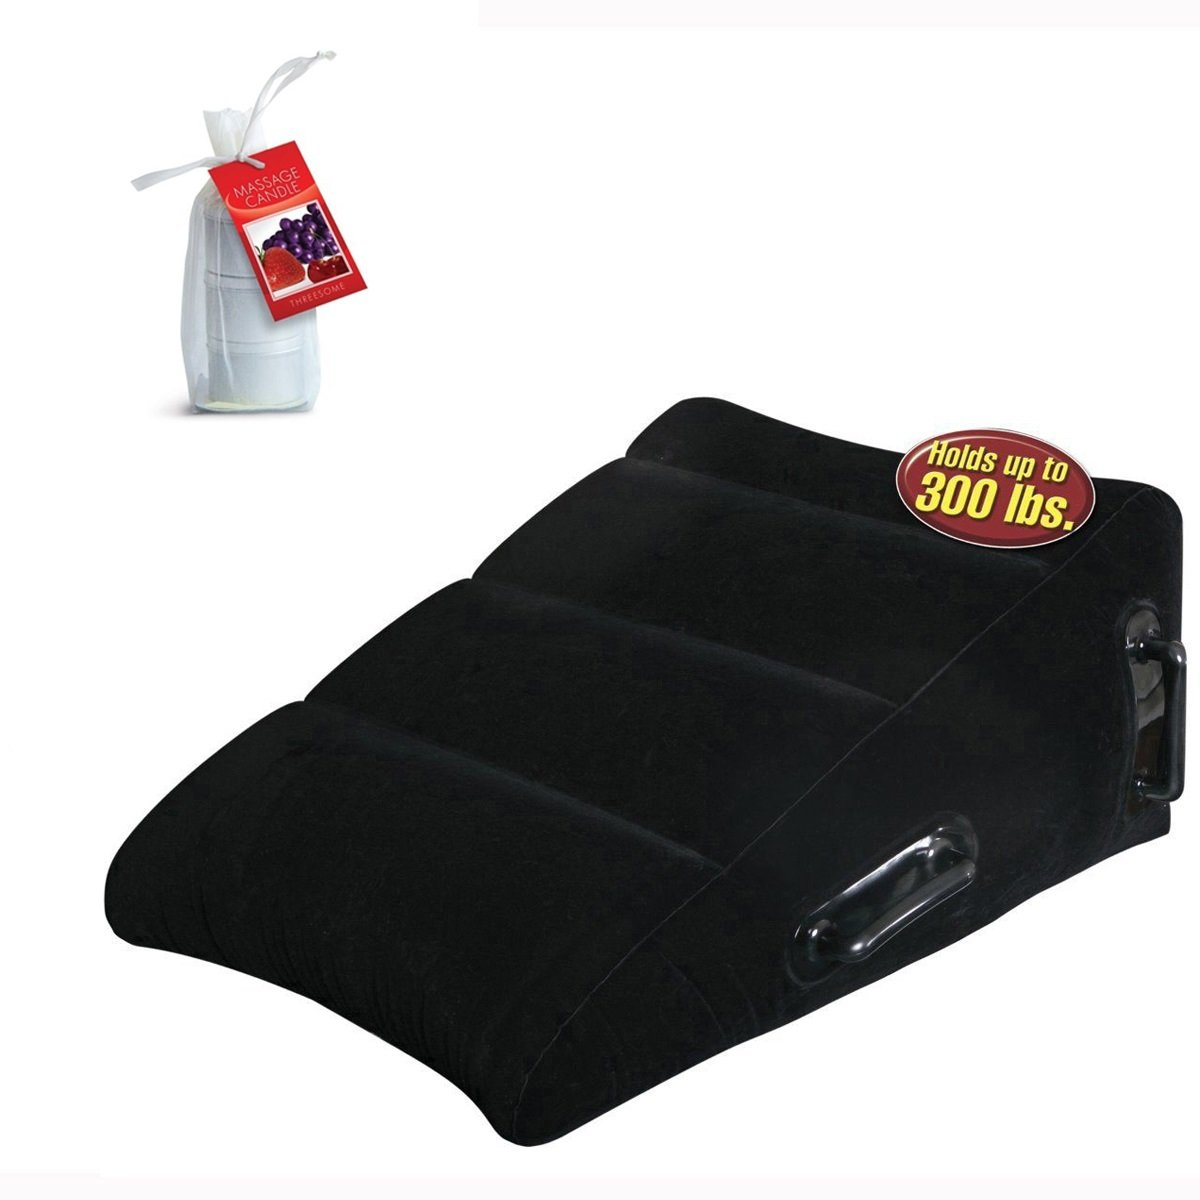 Ultra Inflatable Better Sex Cushion Wedge Pillow AND 3 piece set Massage Oil Candle Cherry Grape Strawberry Bundle